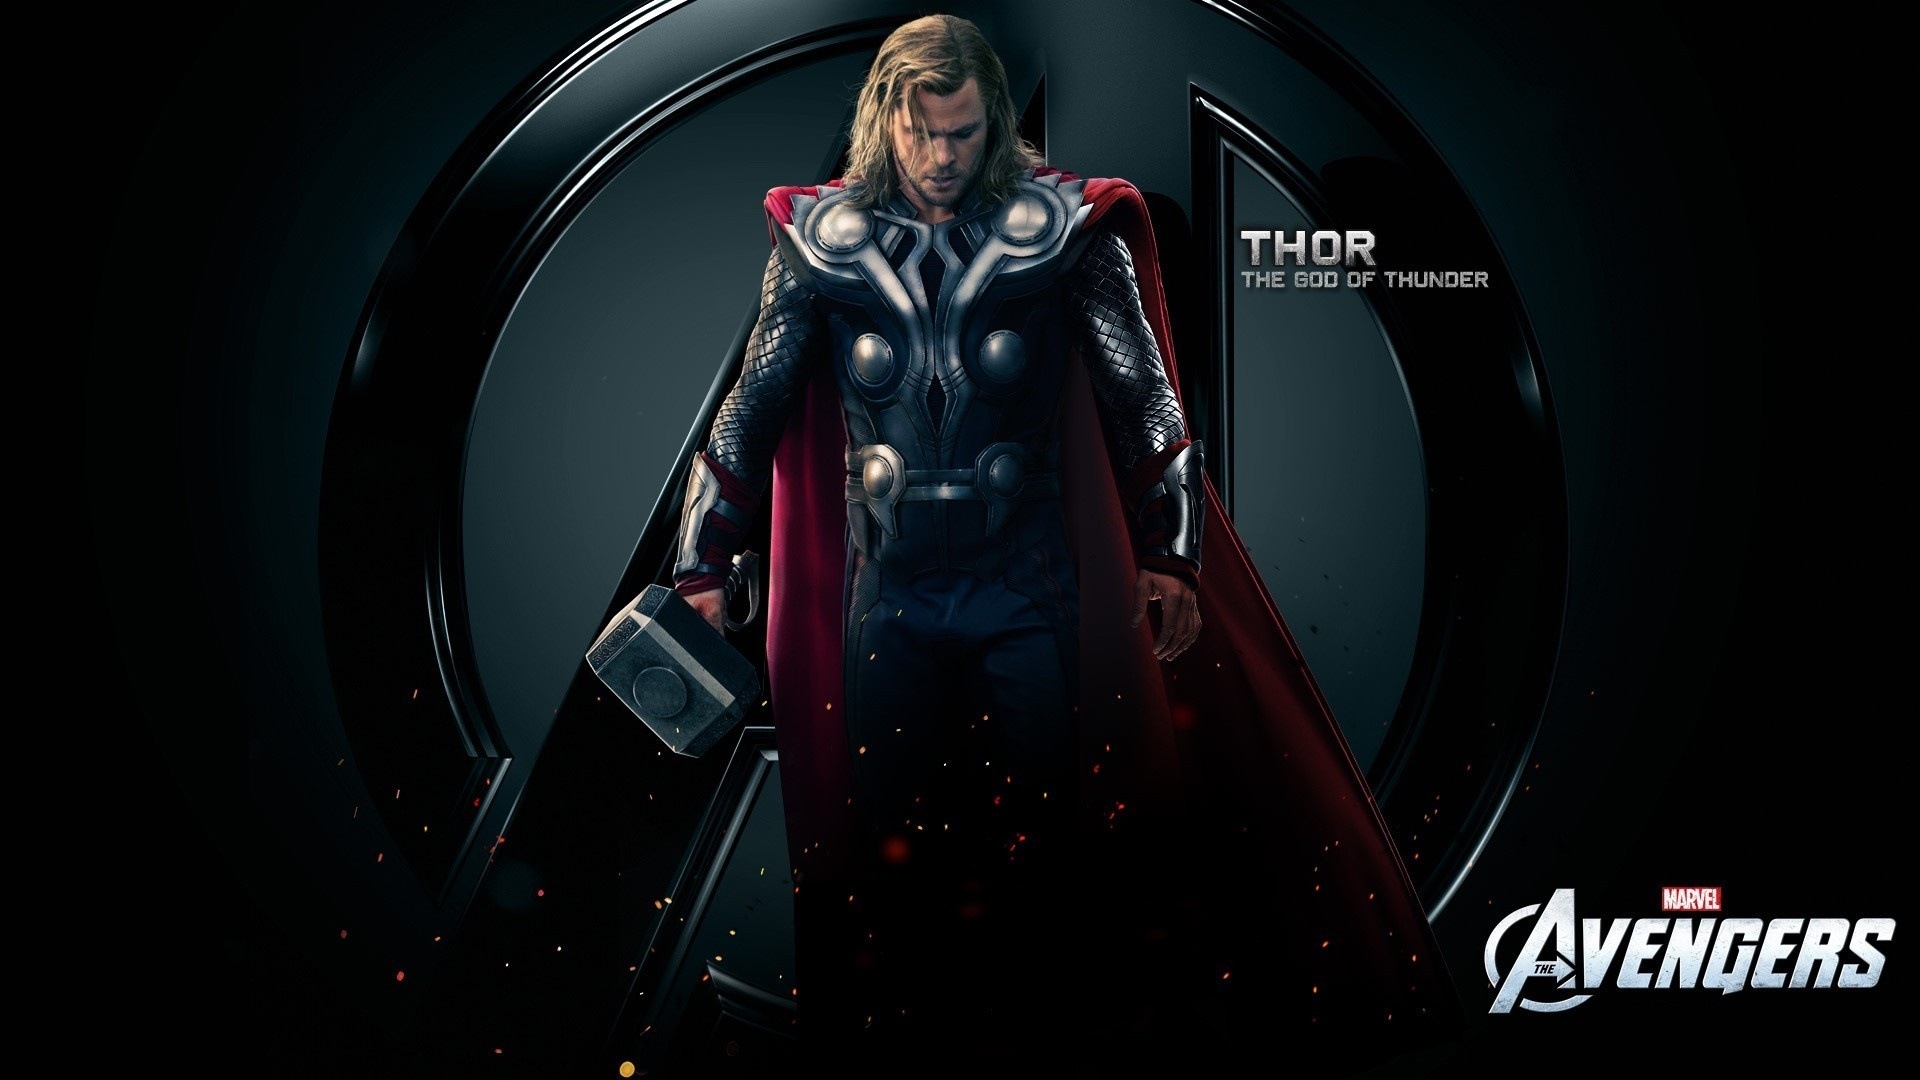 Chris Hemsworth Mjolnir The Avengers Movie Thor Wallpaper